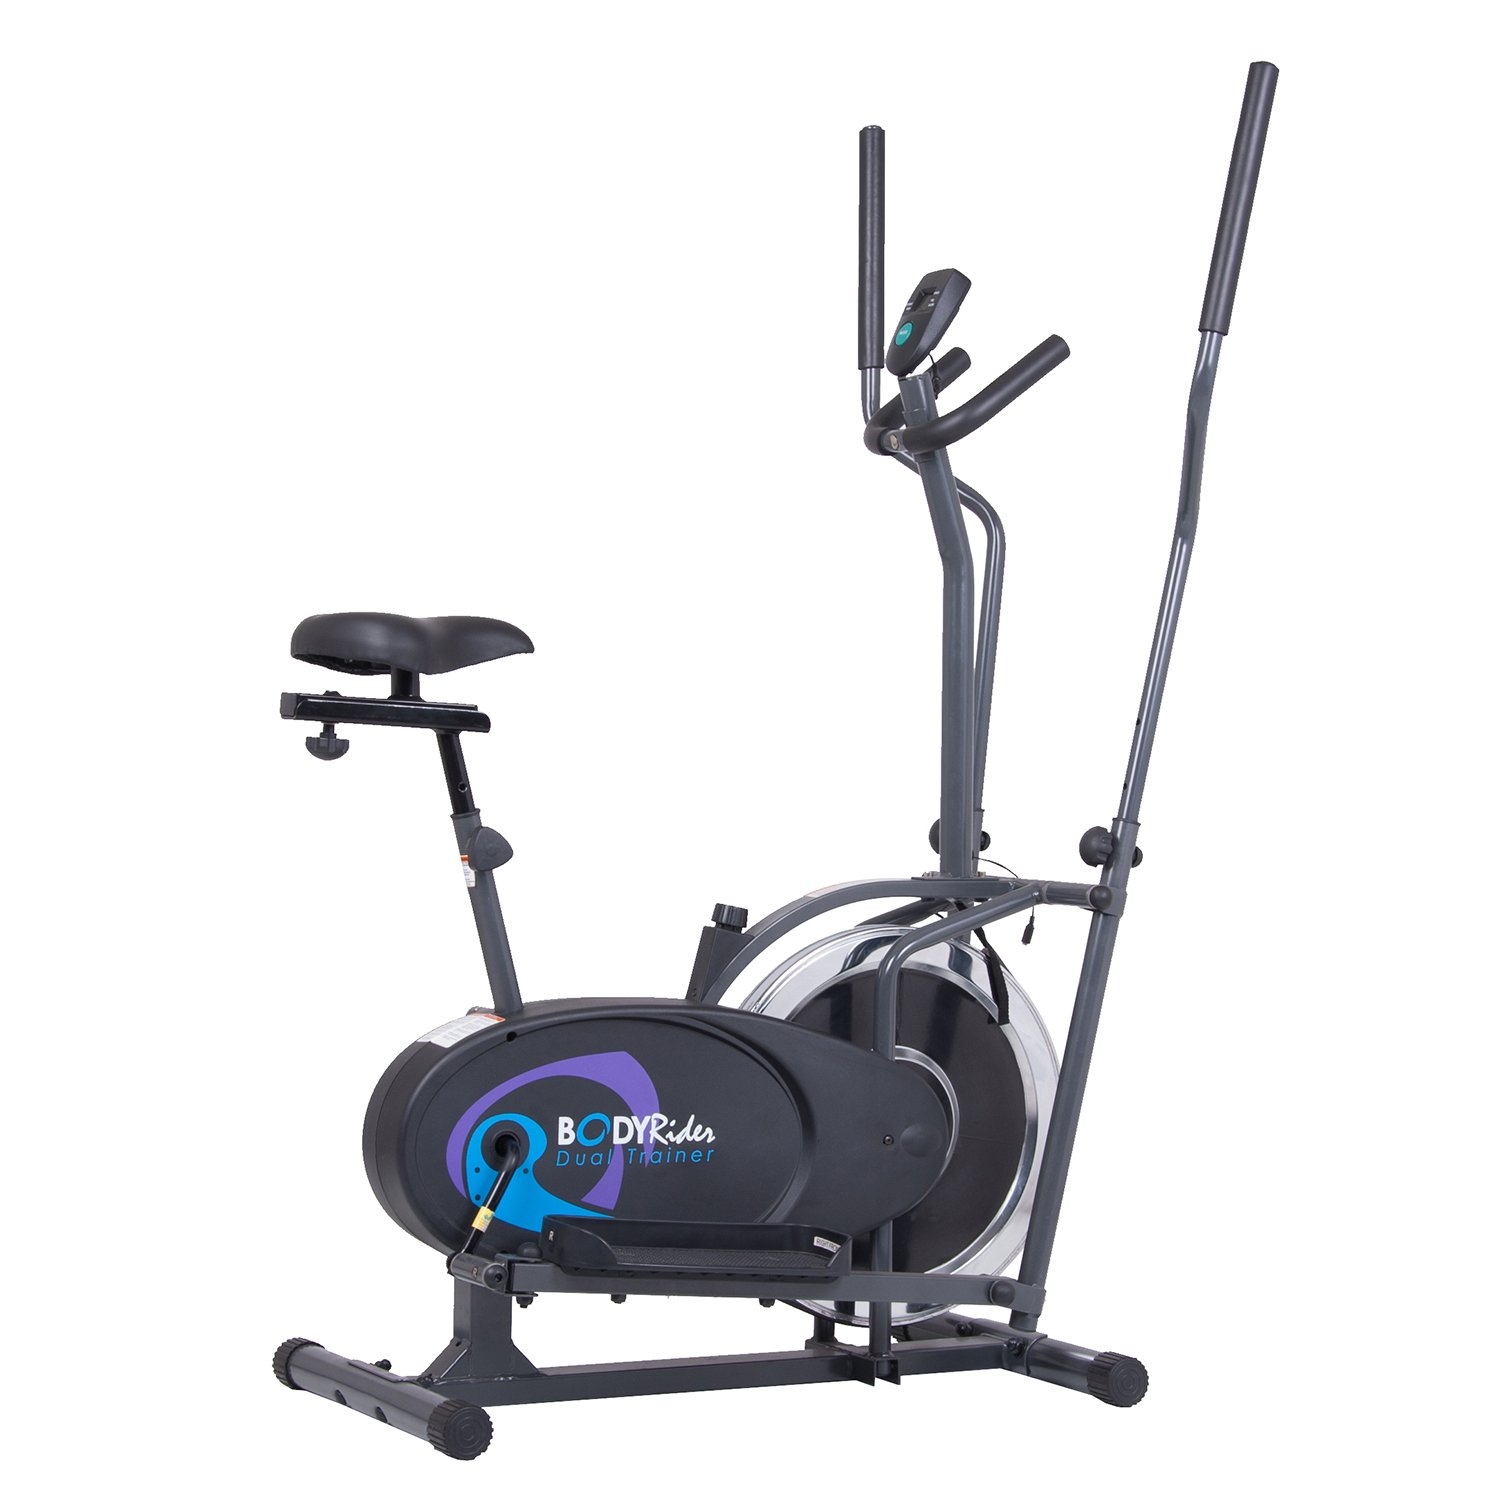 The Body Rider Deluxe Flywheel Dual Trainer